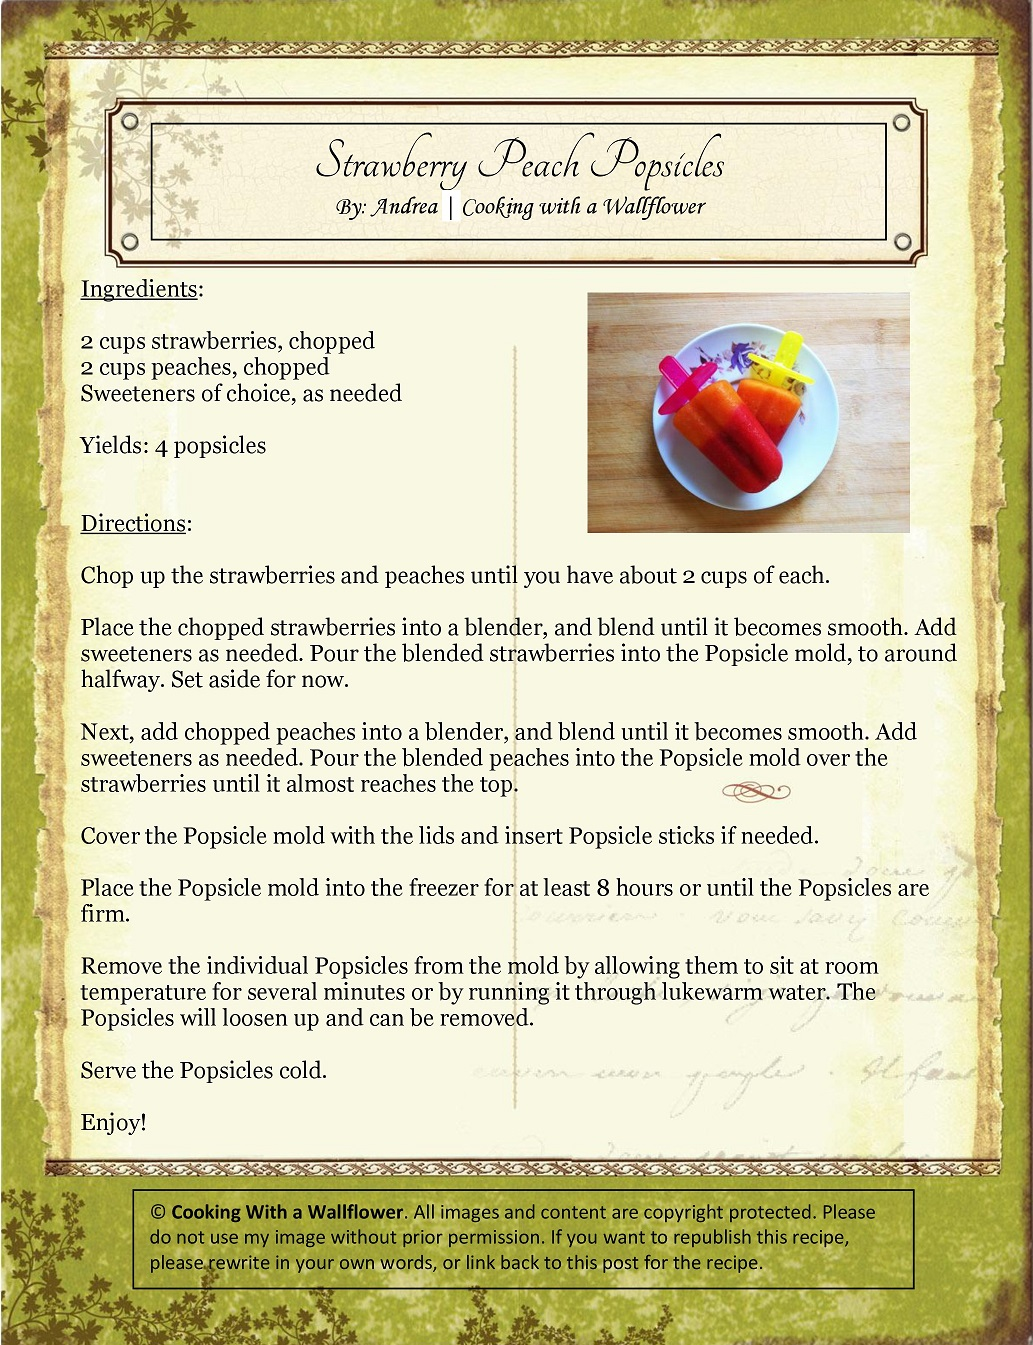 Strawberry Peach Popsicles Recipe Card